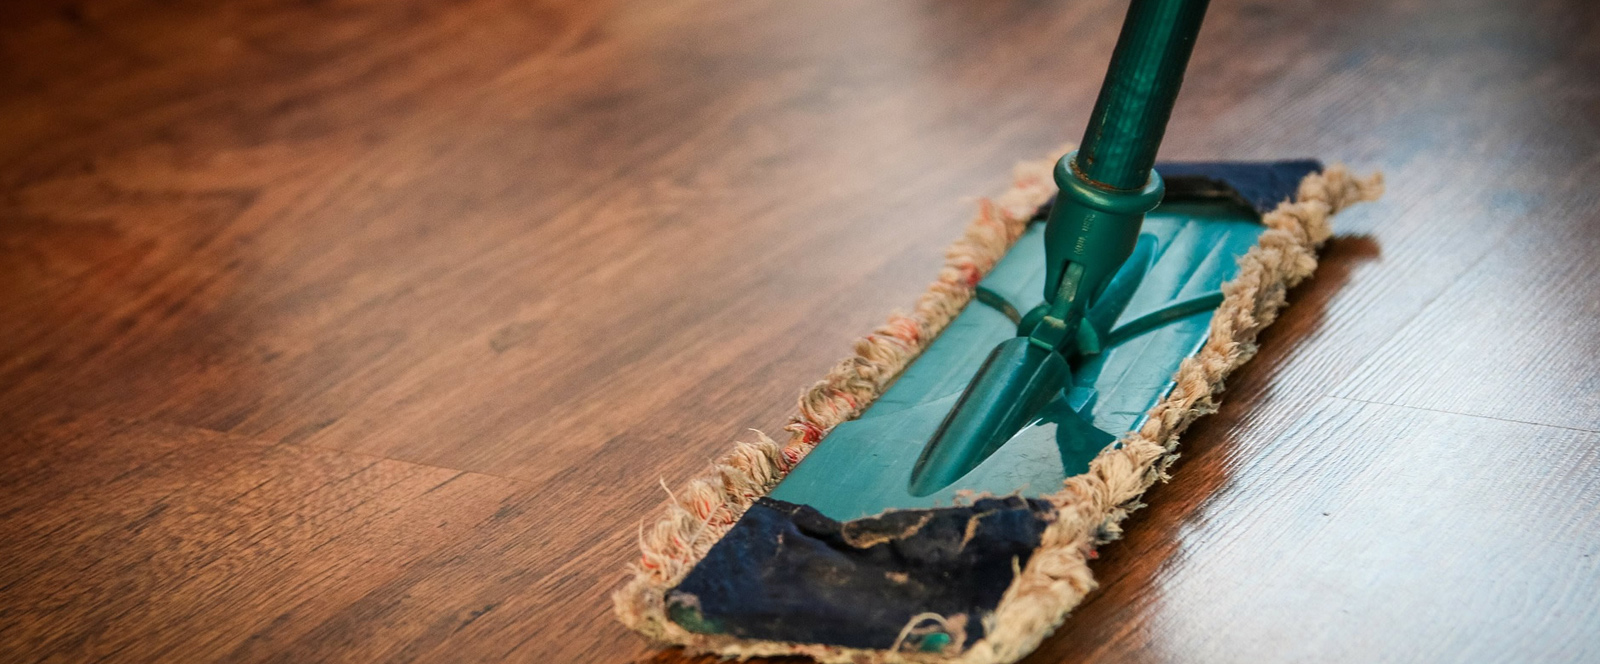 The factors of choosing the right residential cleaning services